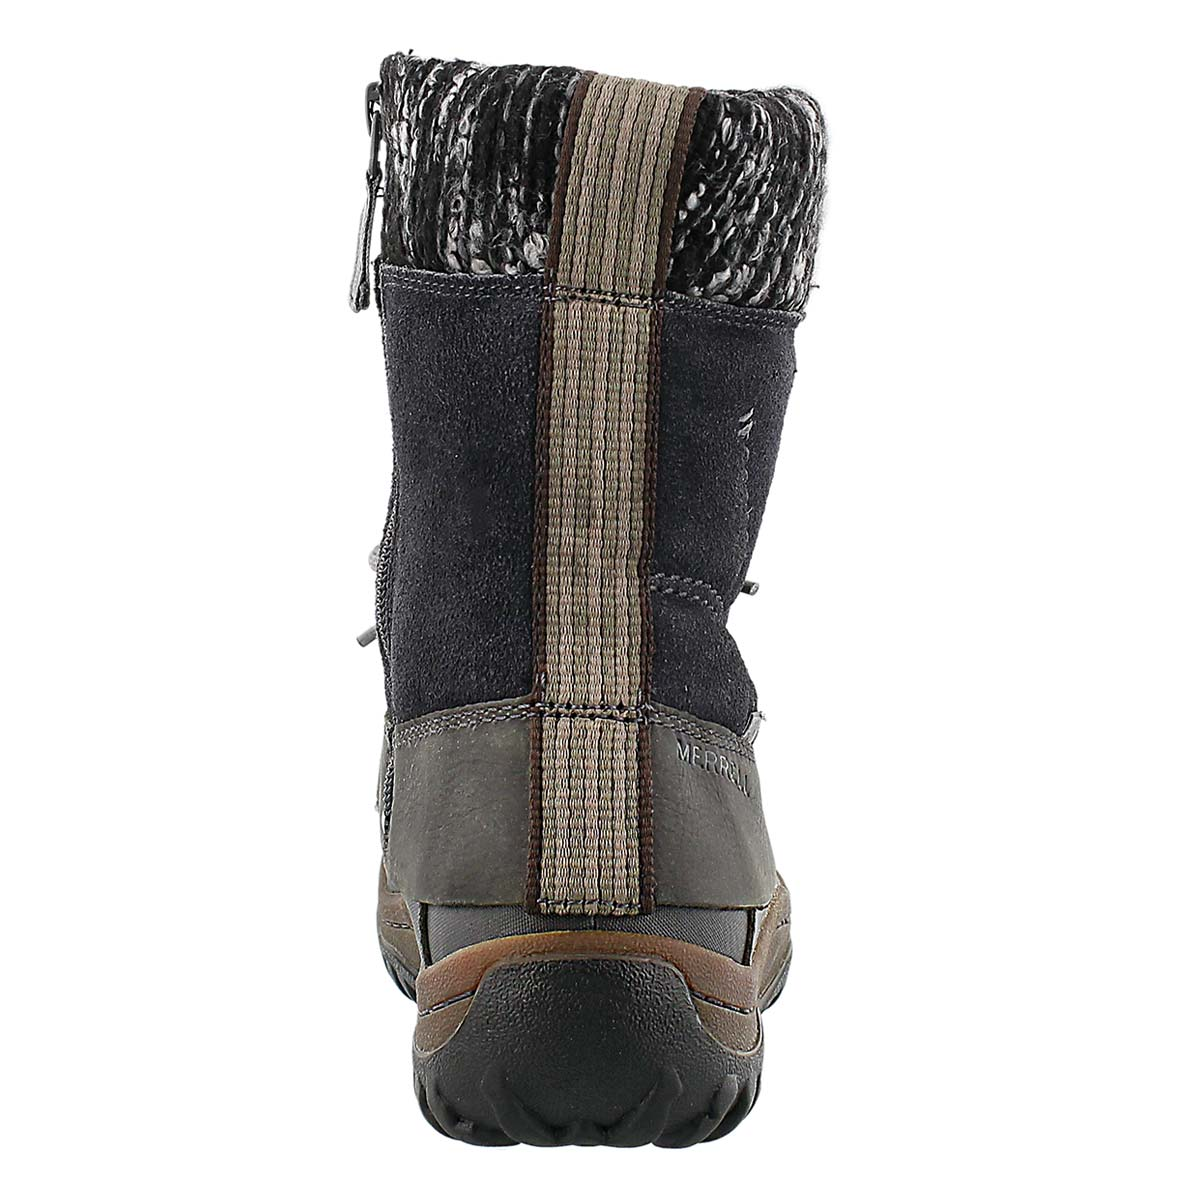 Lds Bolero wild dove wtrpf winter boot